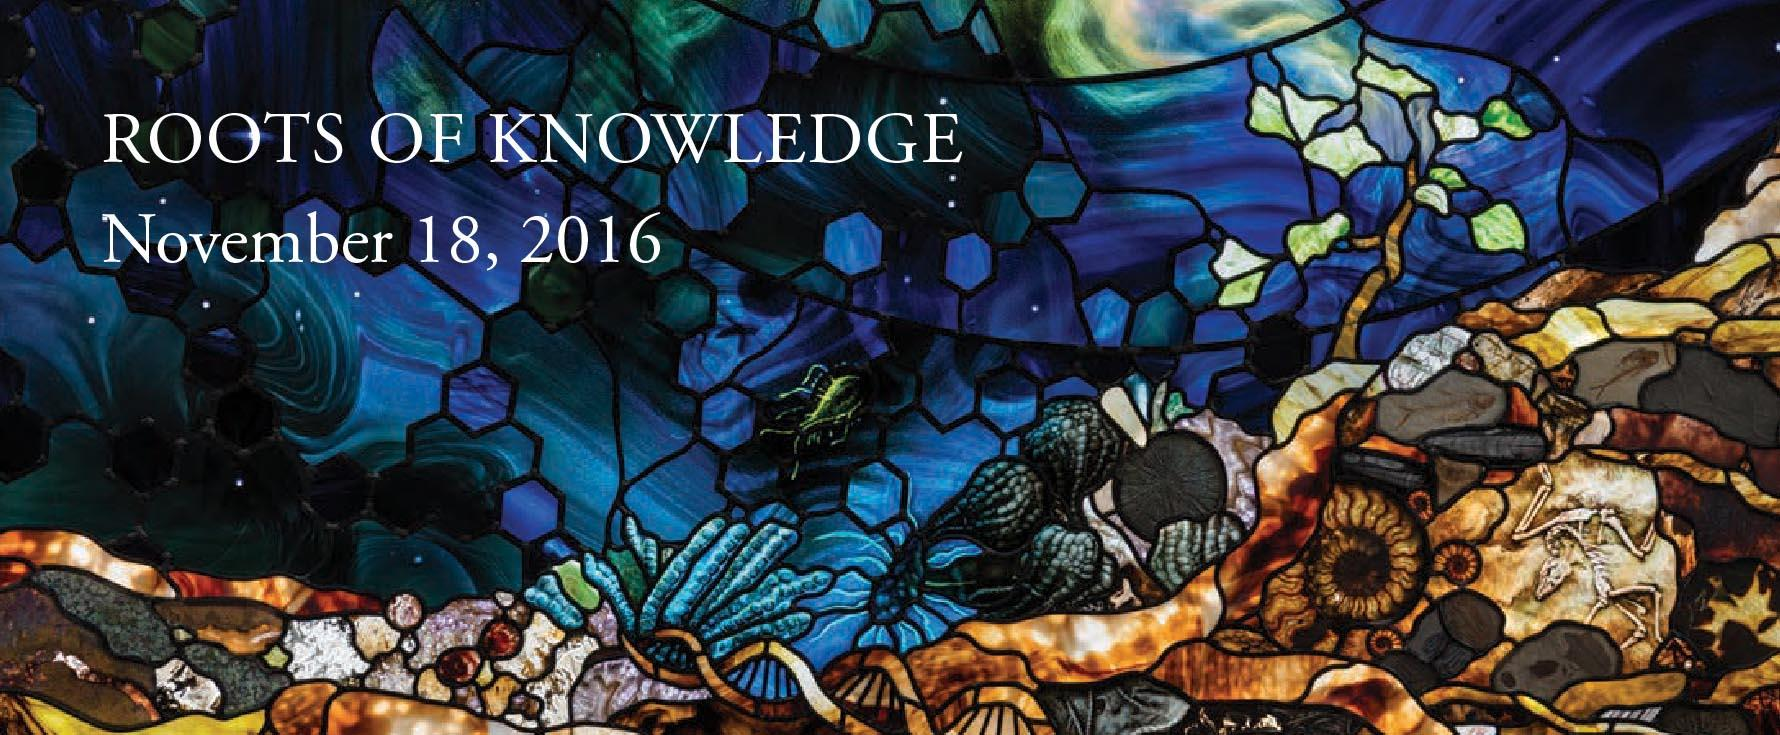 Roots of Knowledge stained glass window November 18, 2016